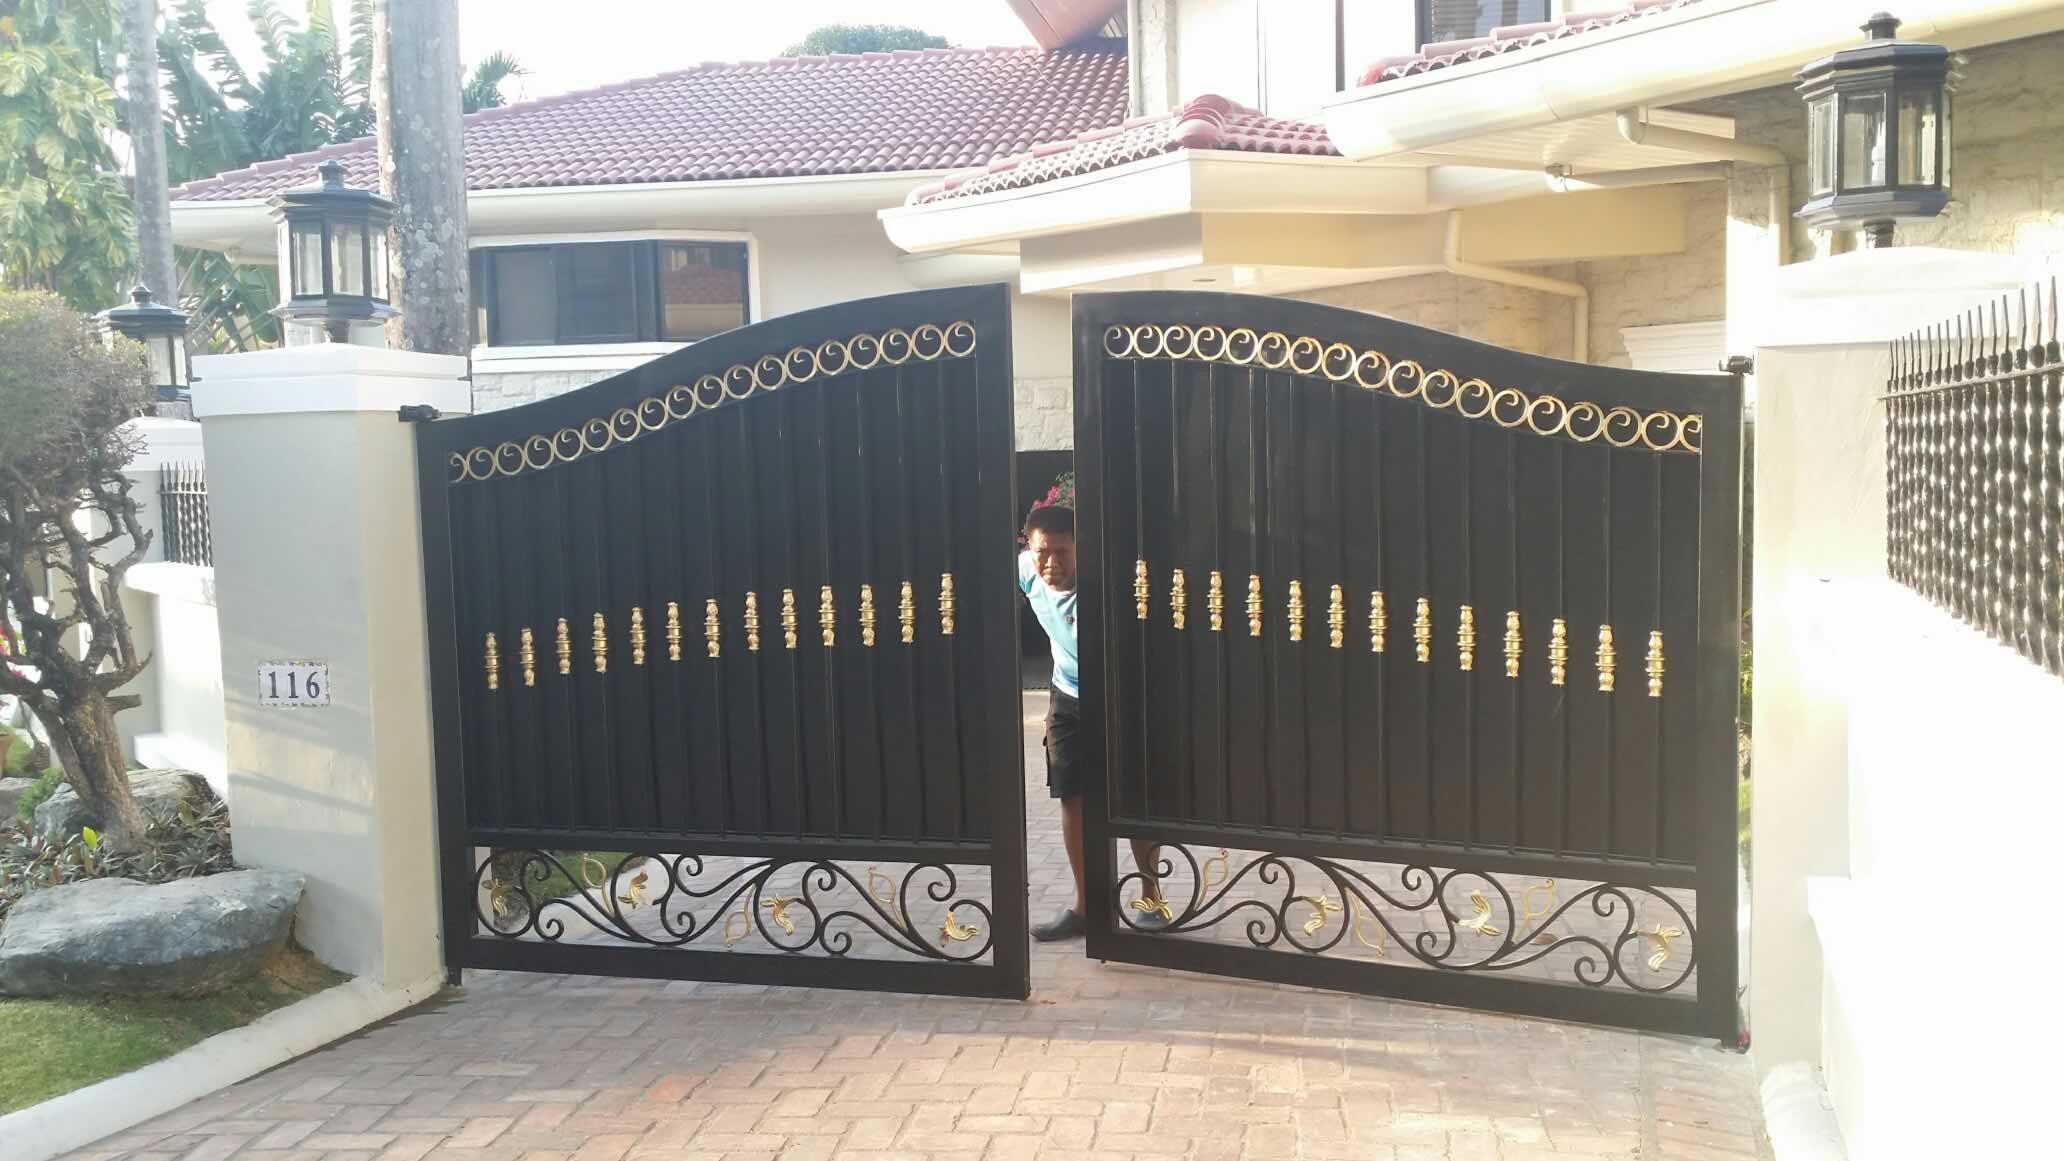 Entrance Gate Fabrication Glass Railings Philippines Glass Railing Tempered Glass Wrought Iron Railings Gates Grills Metal Fabrication Curved Glass